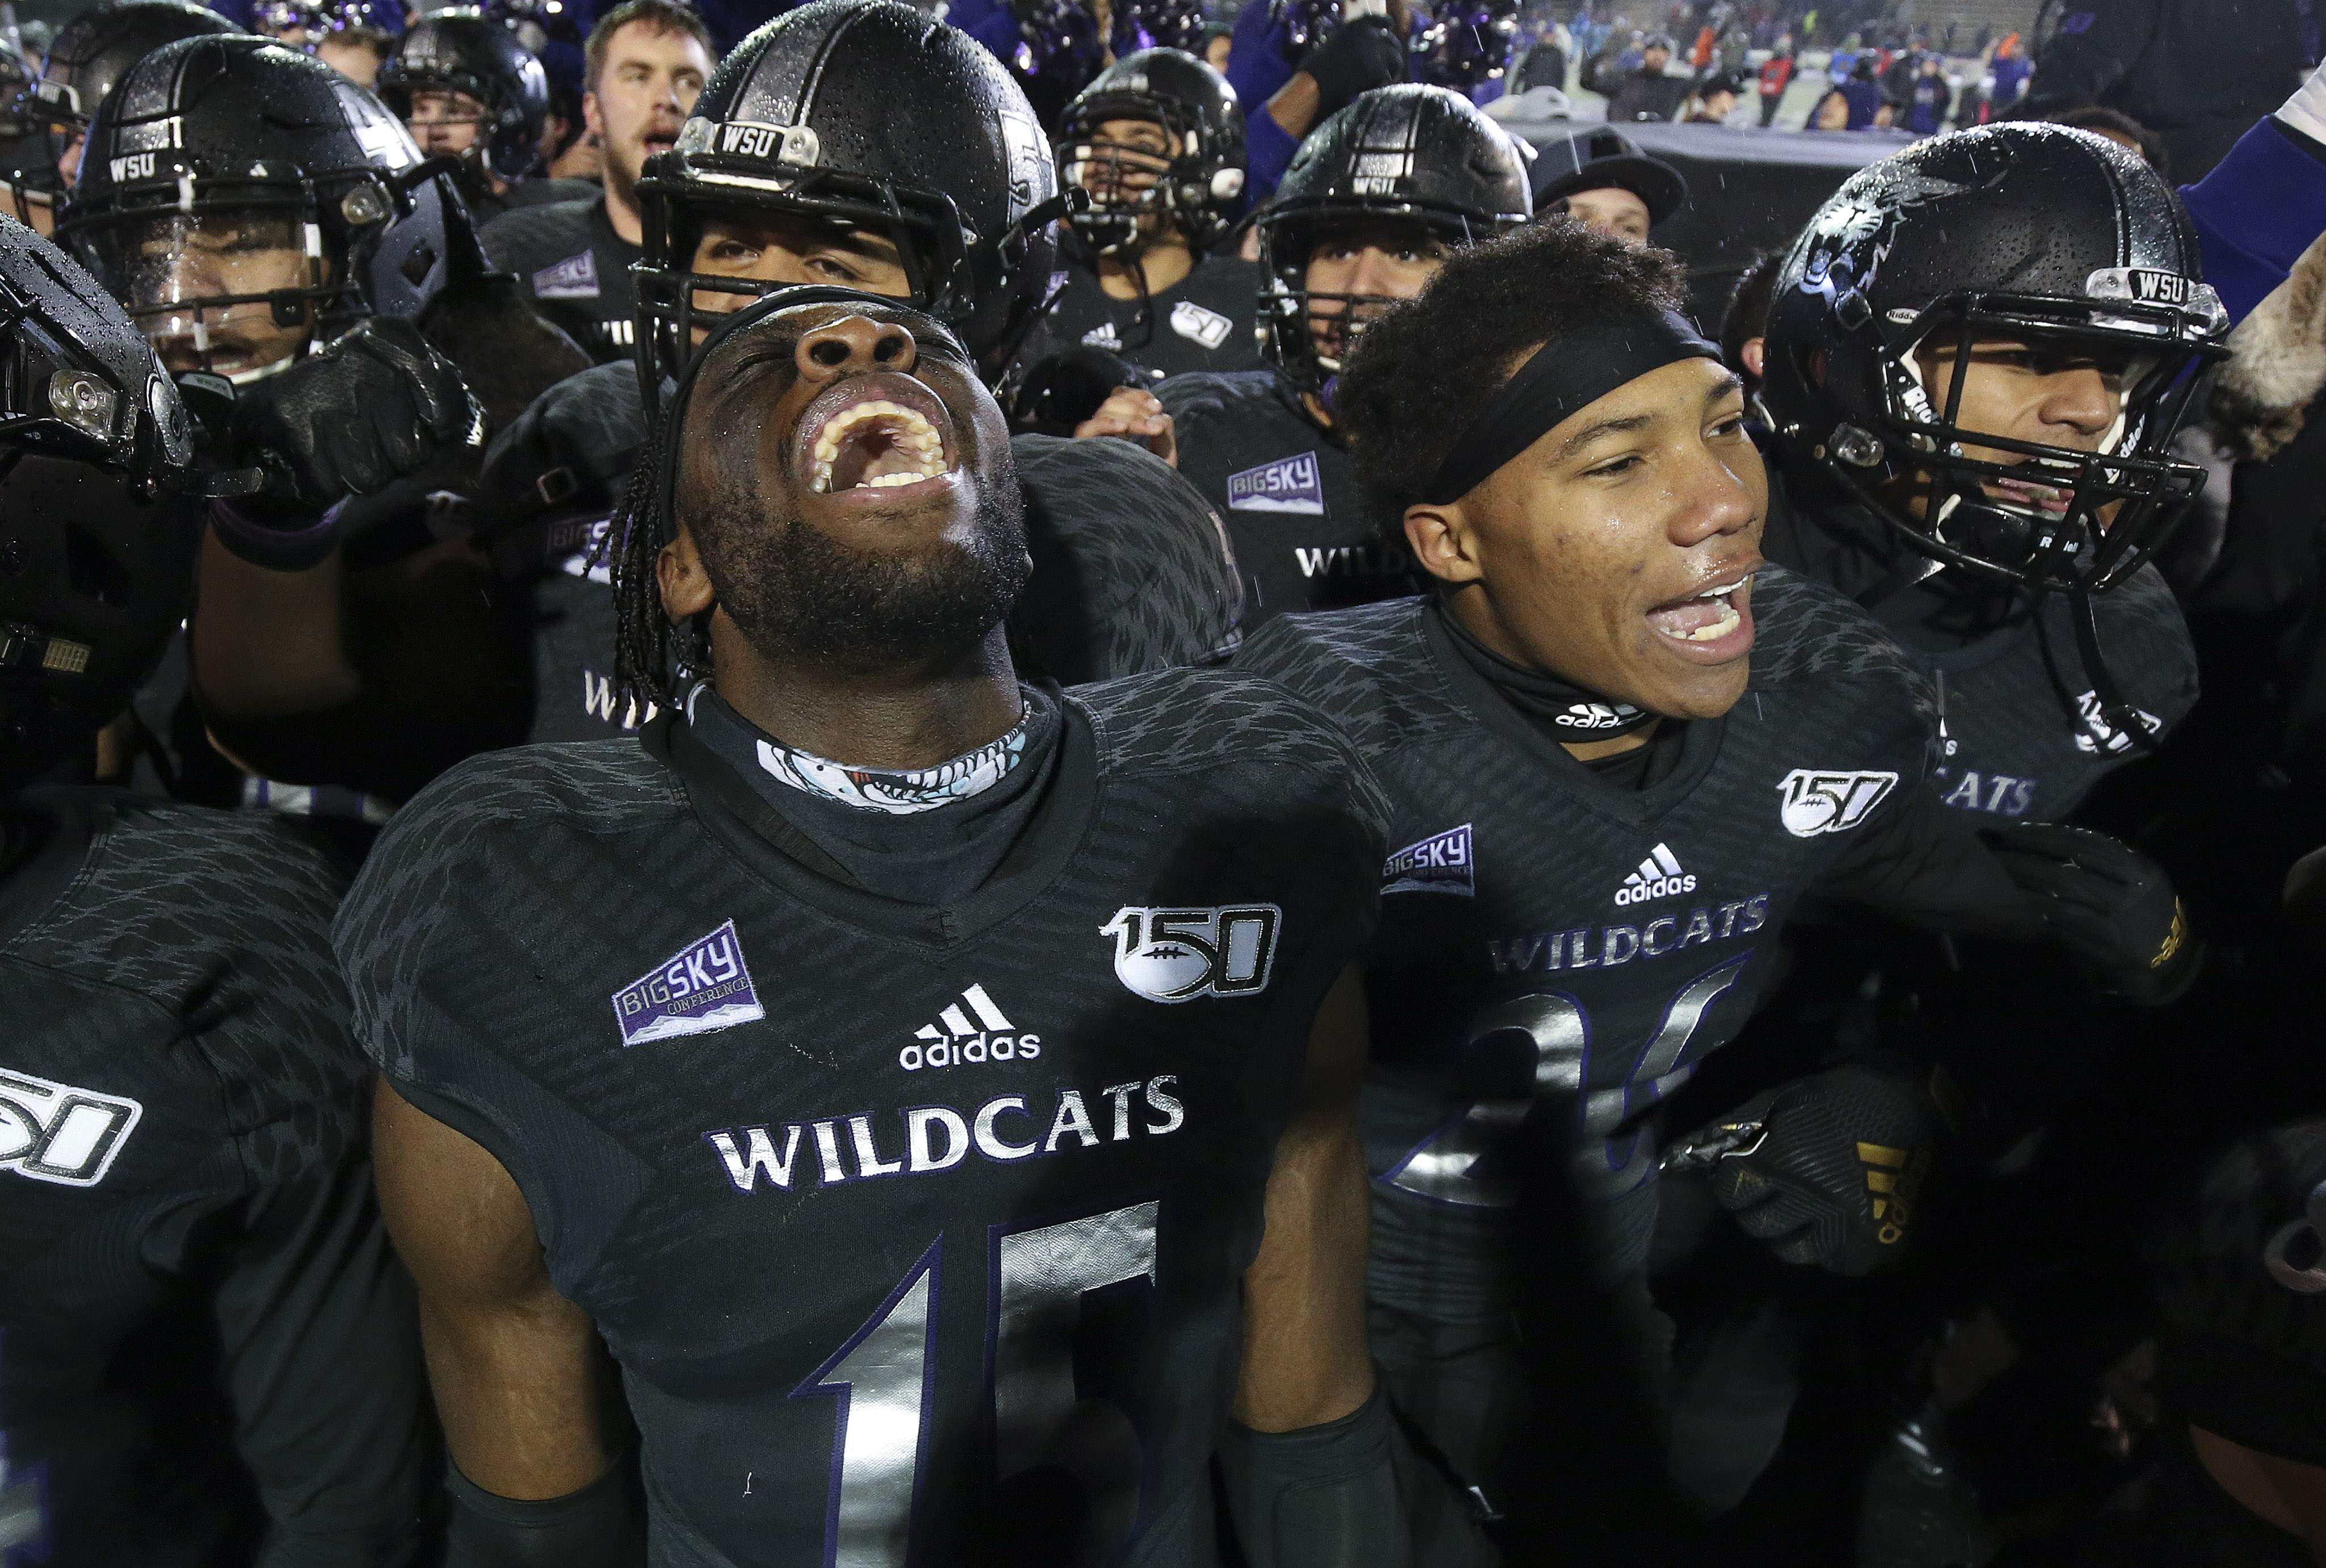 Weber State Wildcats Raoul Johnson (15) celebrate the won over the Montana Grizzlies during the FCS quarterfinals at Stewart Stadium in Ogden on Friday, Dec. 13, 2019. Weber won 17-10.